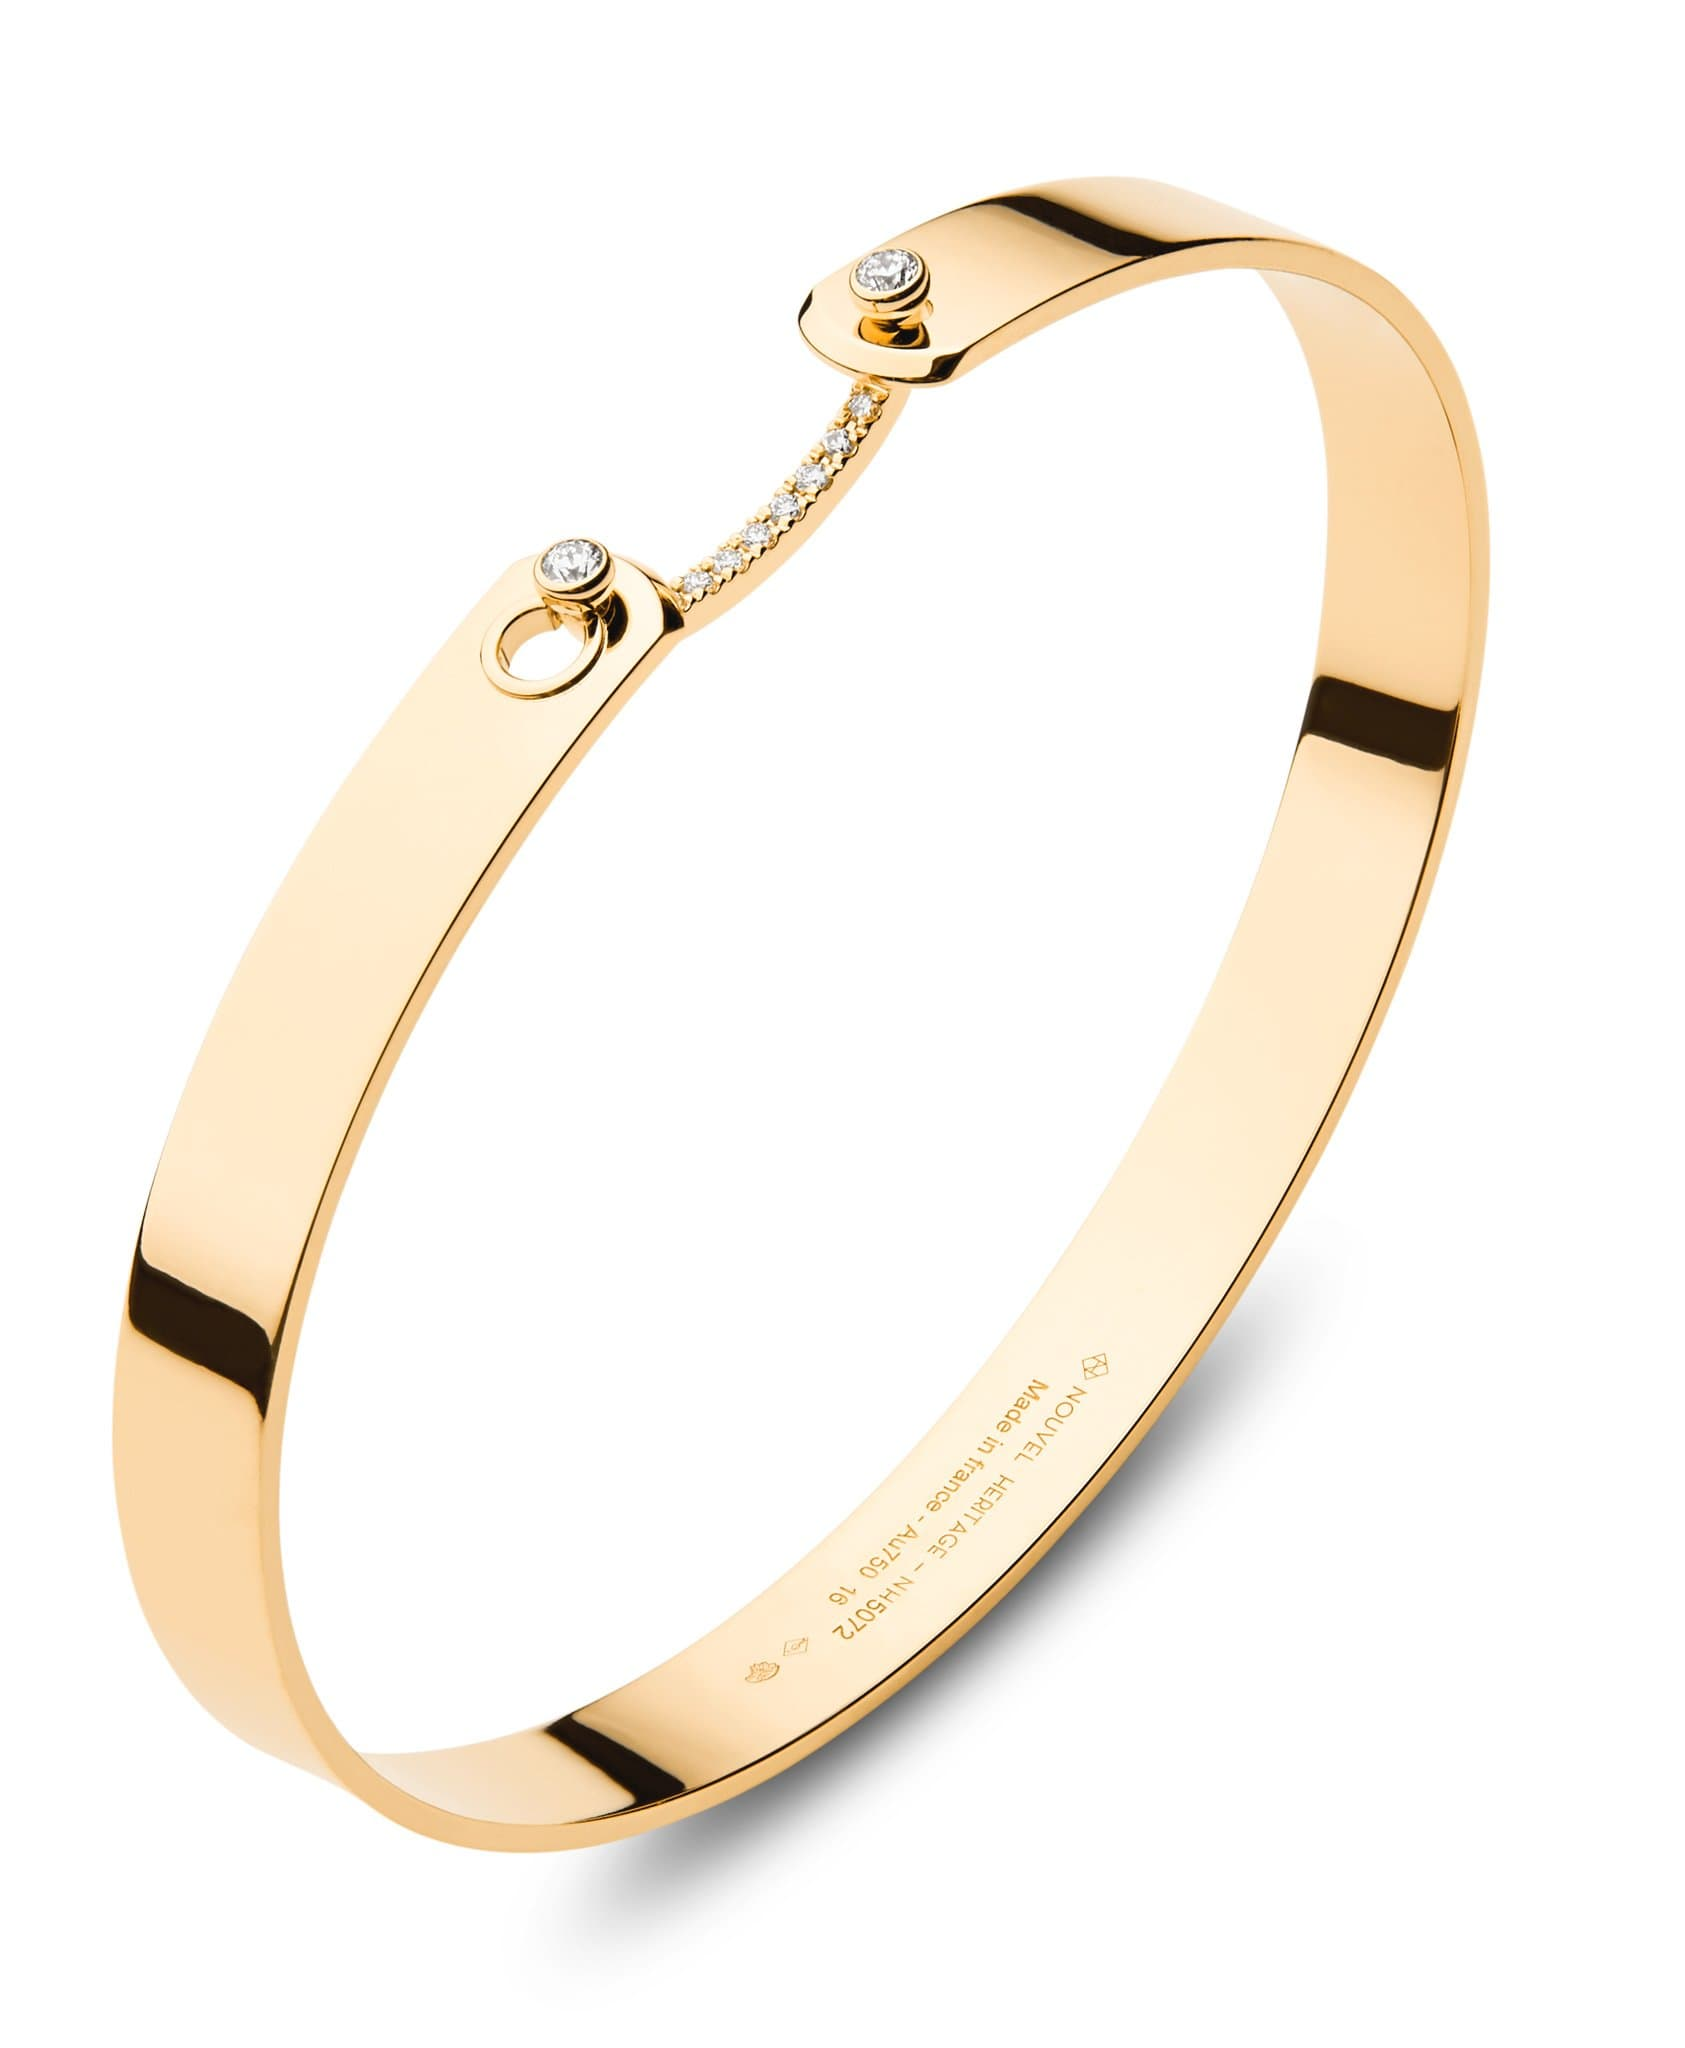 Business Meeting GM Mood Bangle: Discover Luxury Fine Jewelry | Nouvel Heritage || Yellow Gold